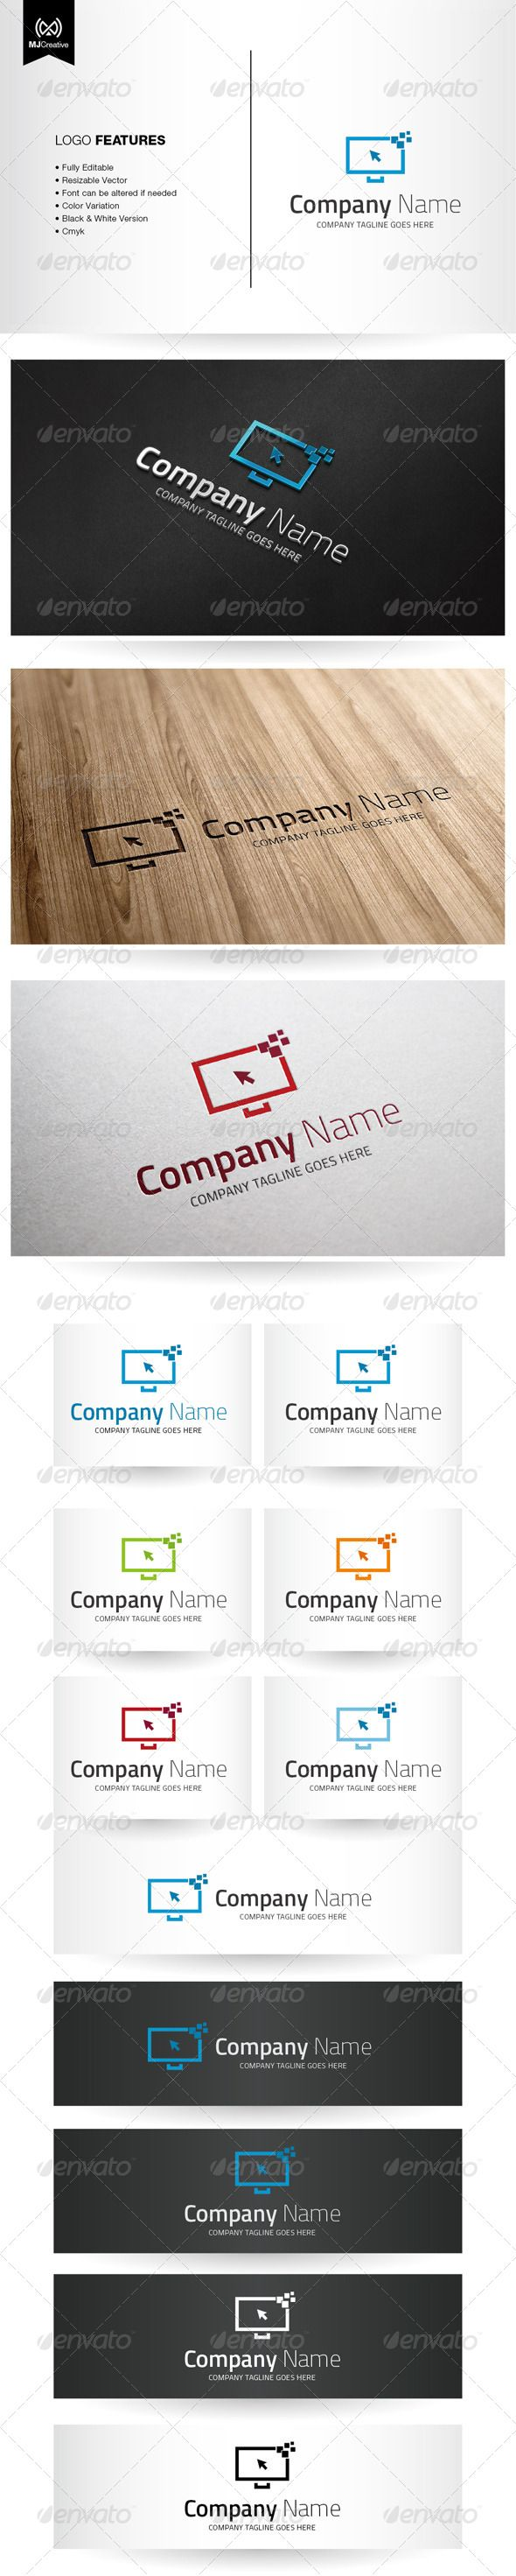 Digital And Technology Screen  - Logo Design Template Vector #logotype Download it here: http://graphicriver.net/item/digital-and-technology-screen-logo/5596041?s_rank=11?ref=nesto